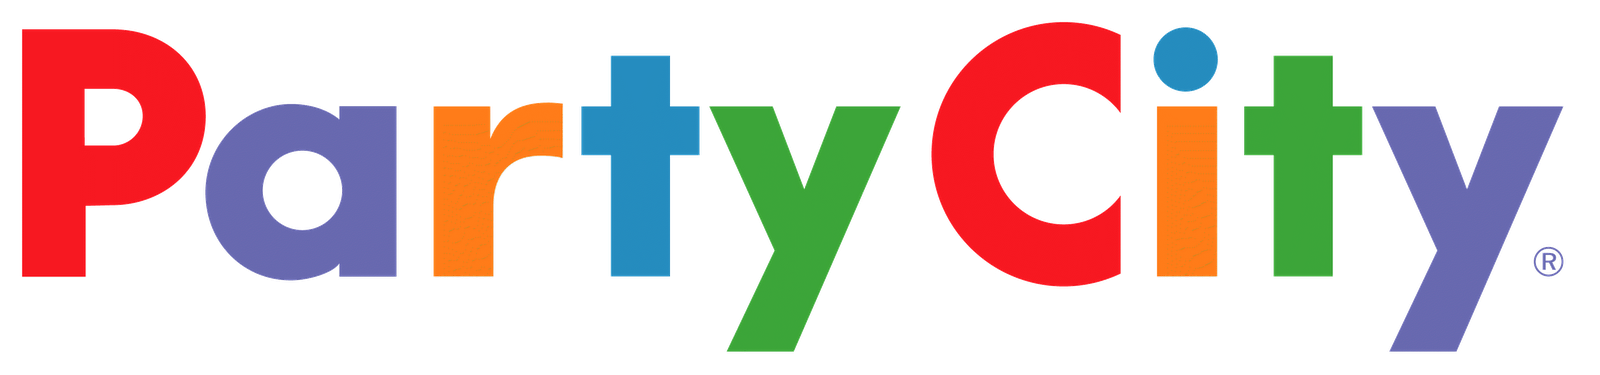 Party city logo png